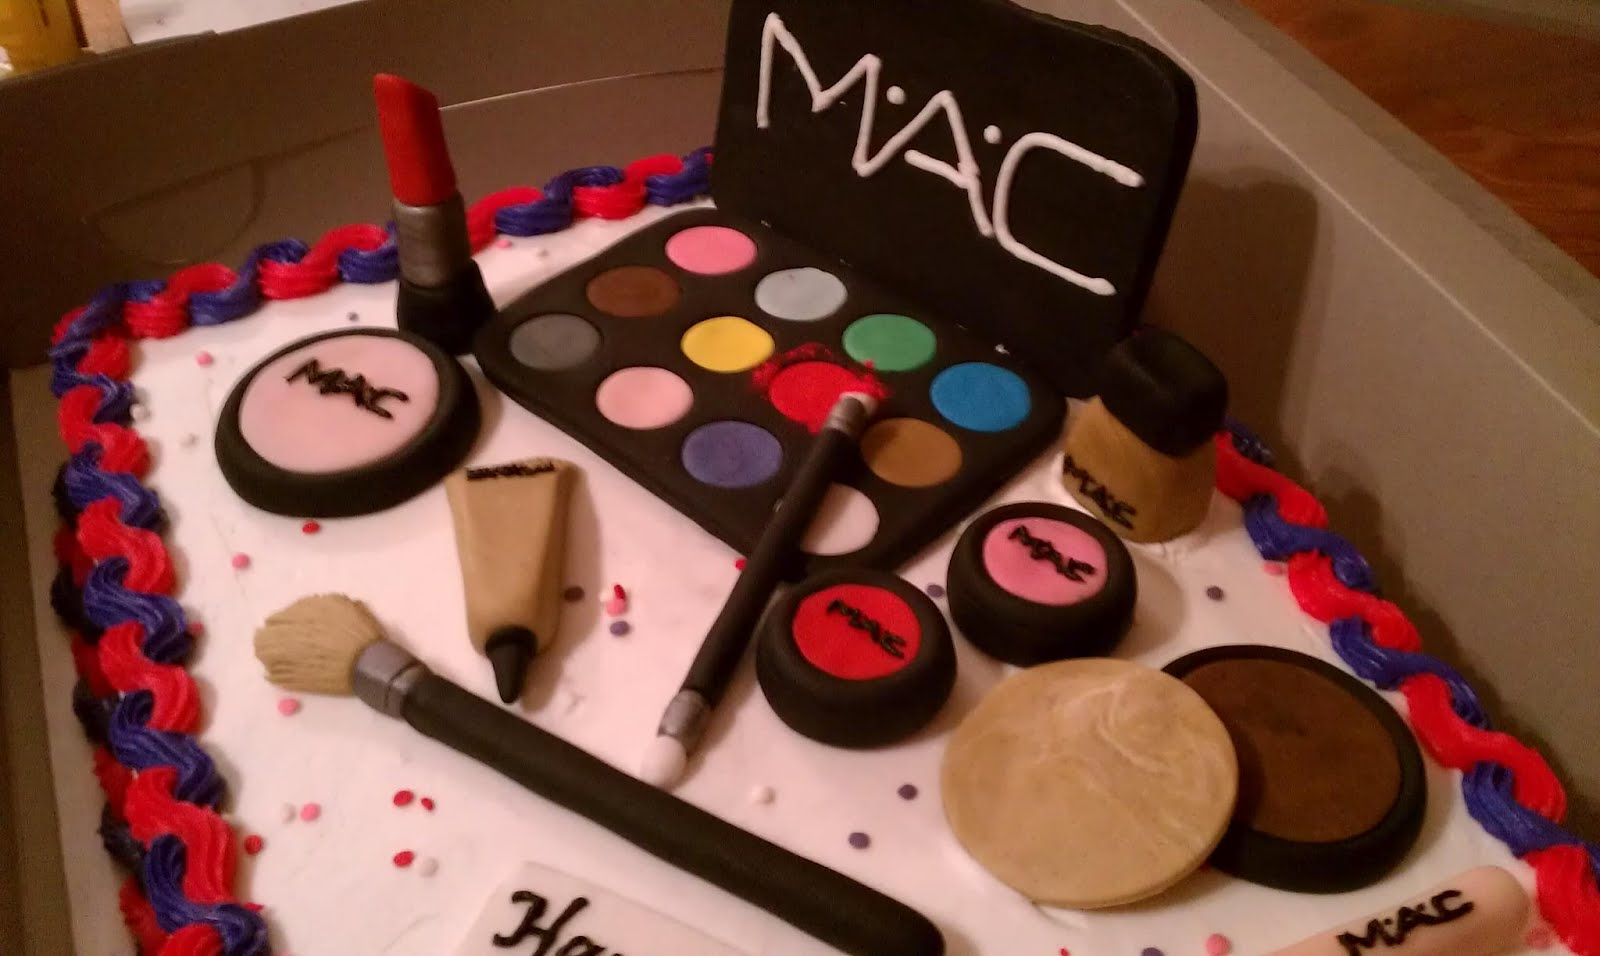 Introducing MAC makeup cake